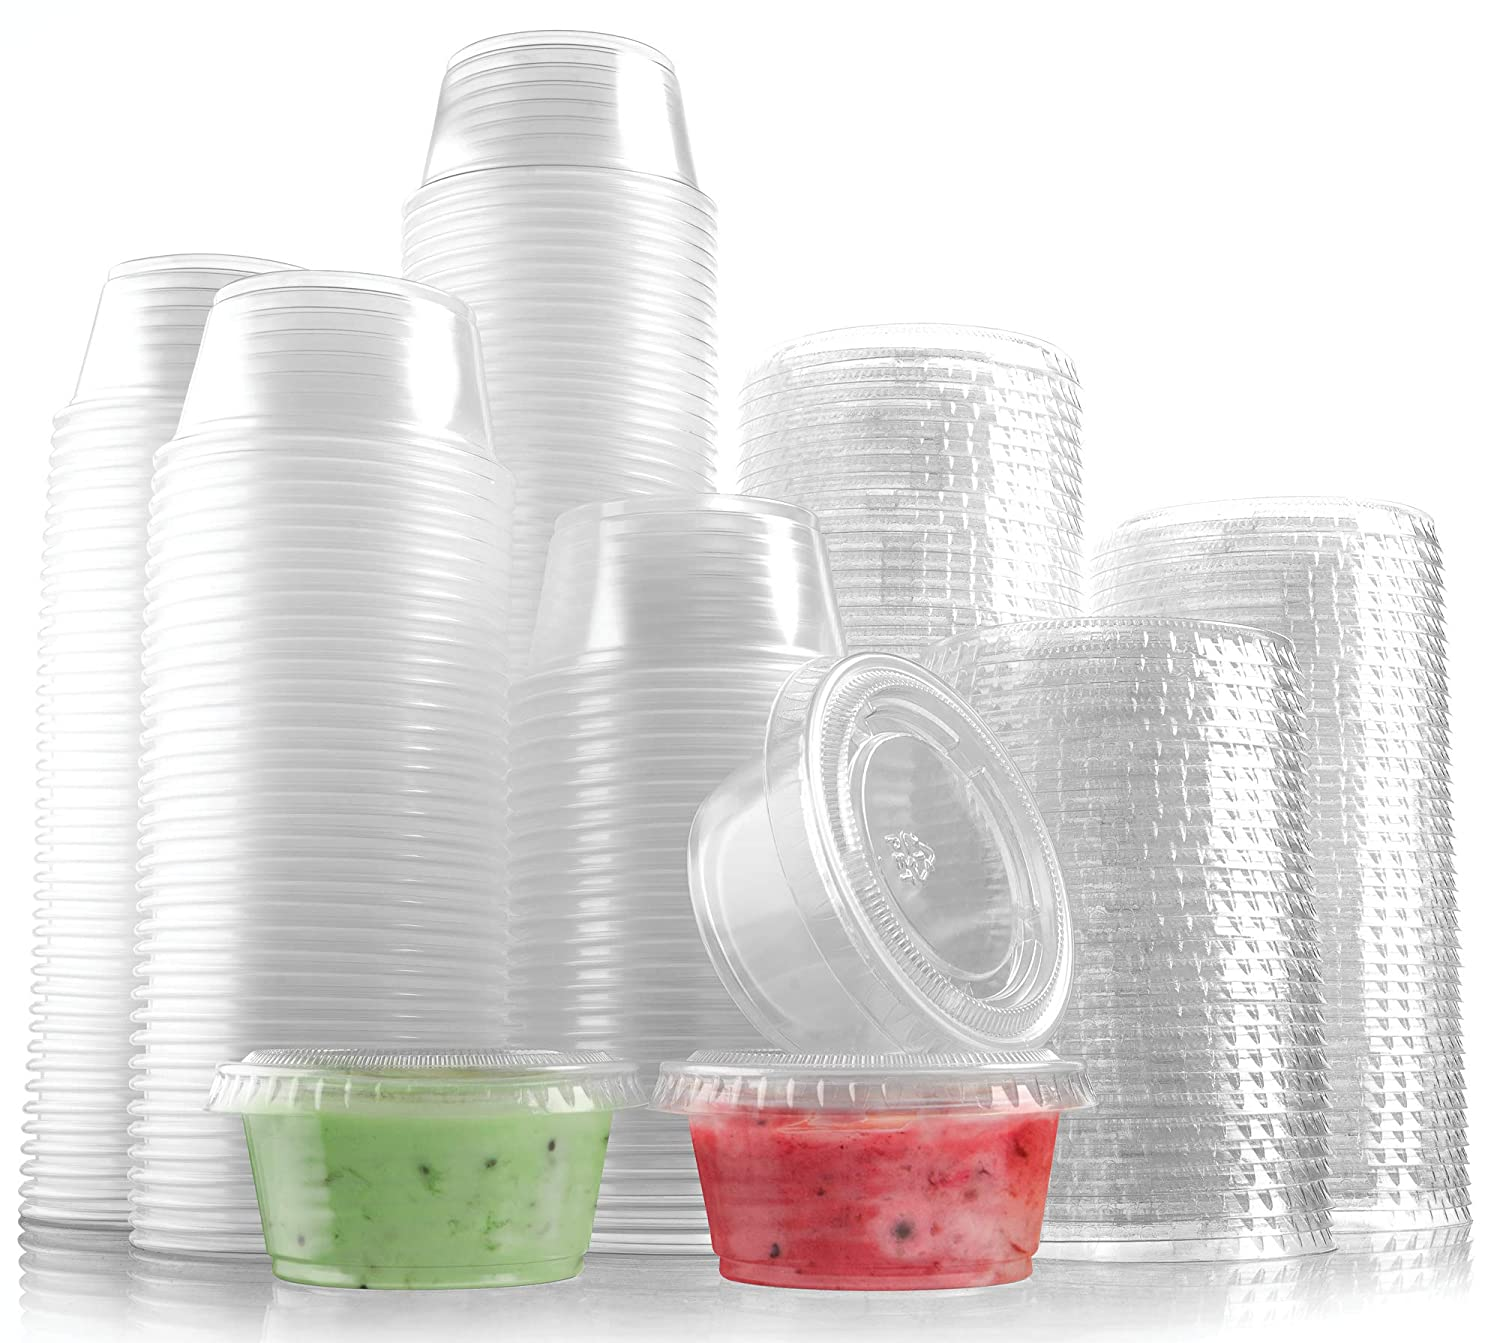 300-Pack Plastic Portion Control Cups with Snap-On Lids 2 oz. | Clear Disposable Small Food Containers | Excellent For Jello Shot, Meal Prep, Salad Dressing, Sushi, Condiments, Medicine, Sauce,Souffle (300, 2 OZ.)